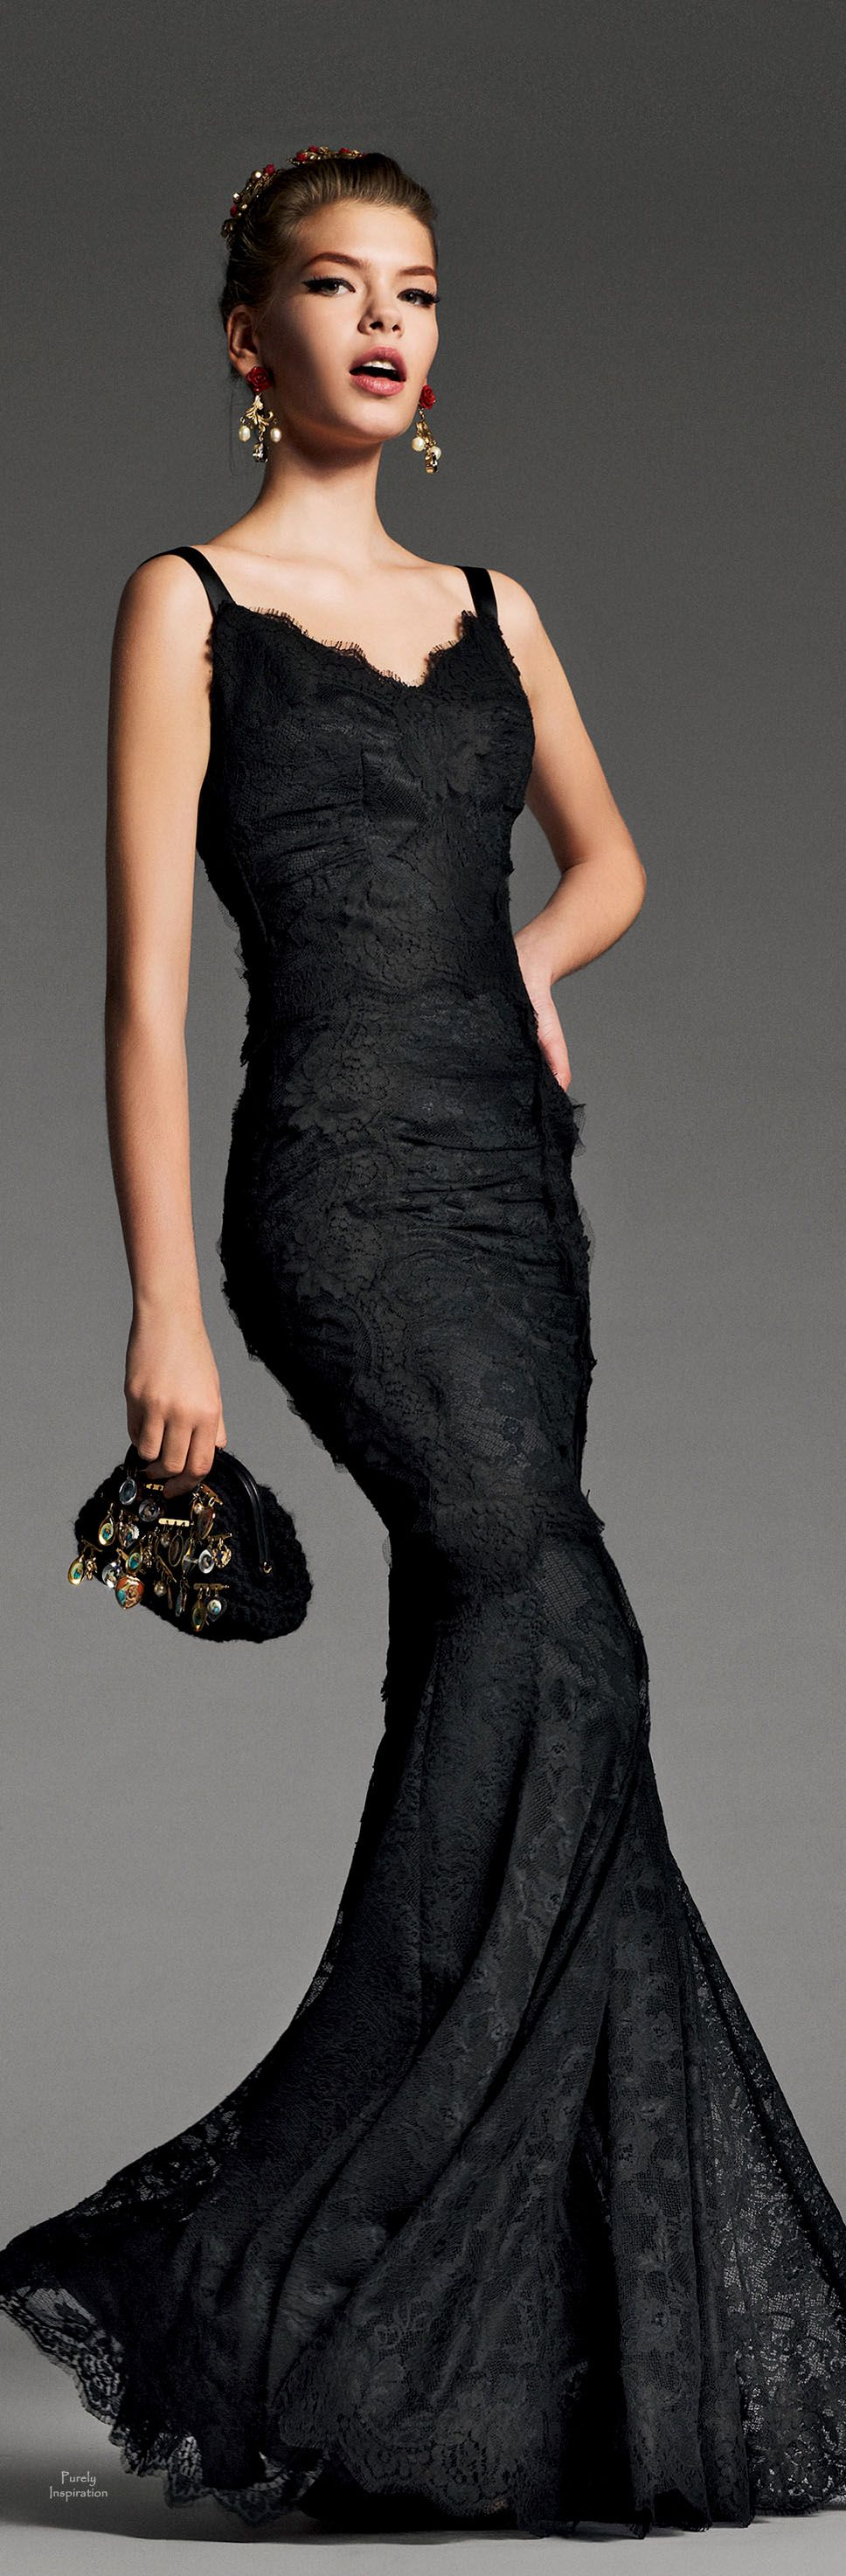 Dolce u gabbana red carpet ready pinterest gowns prom and